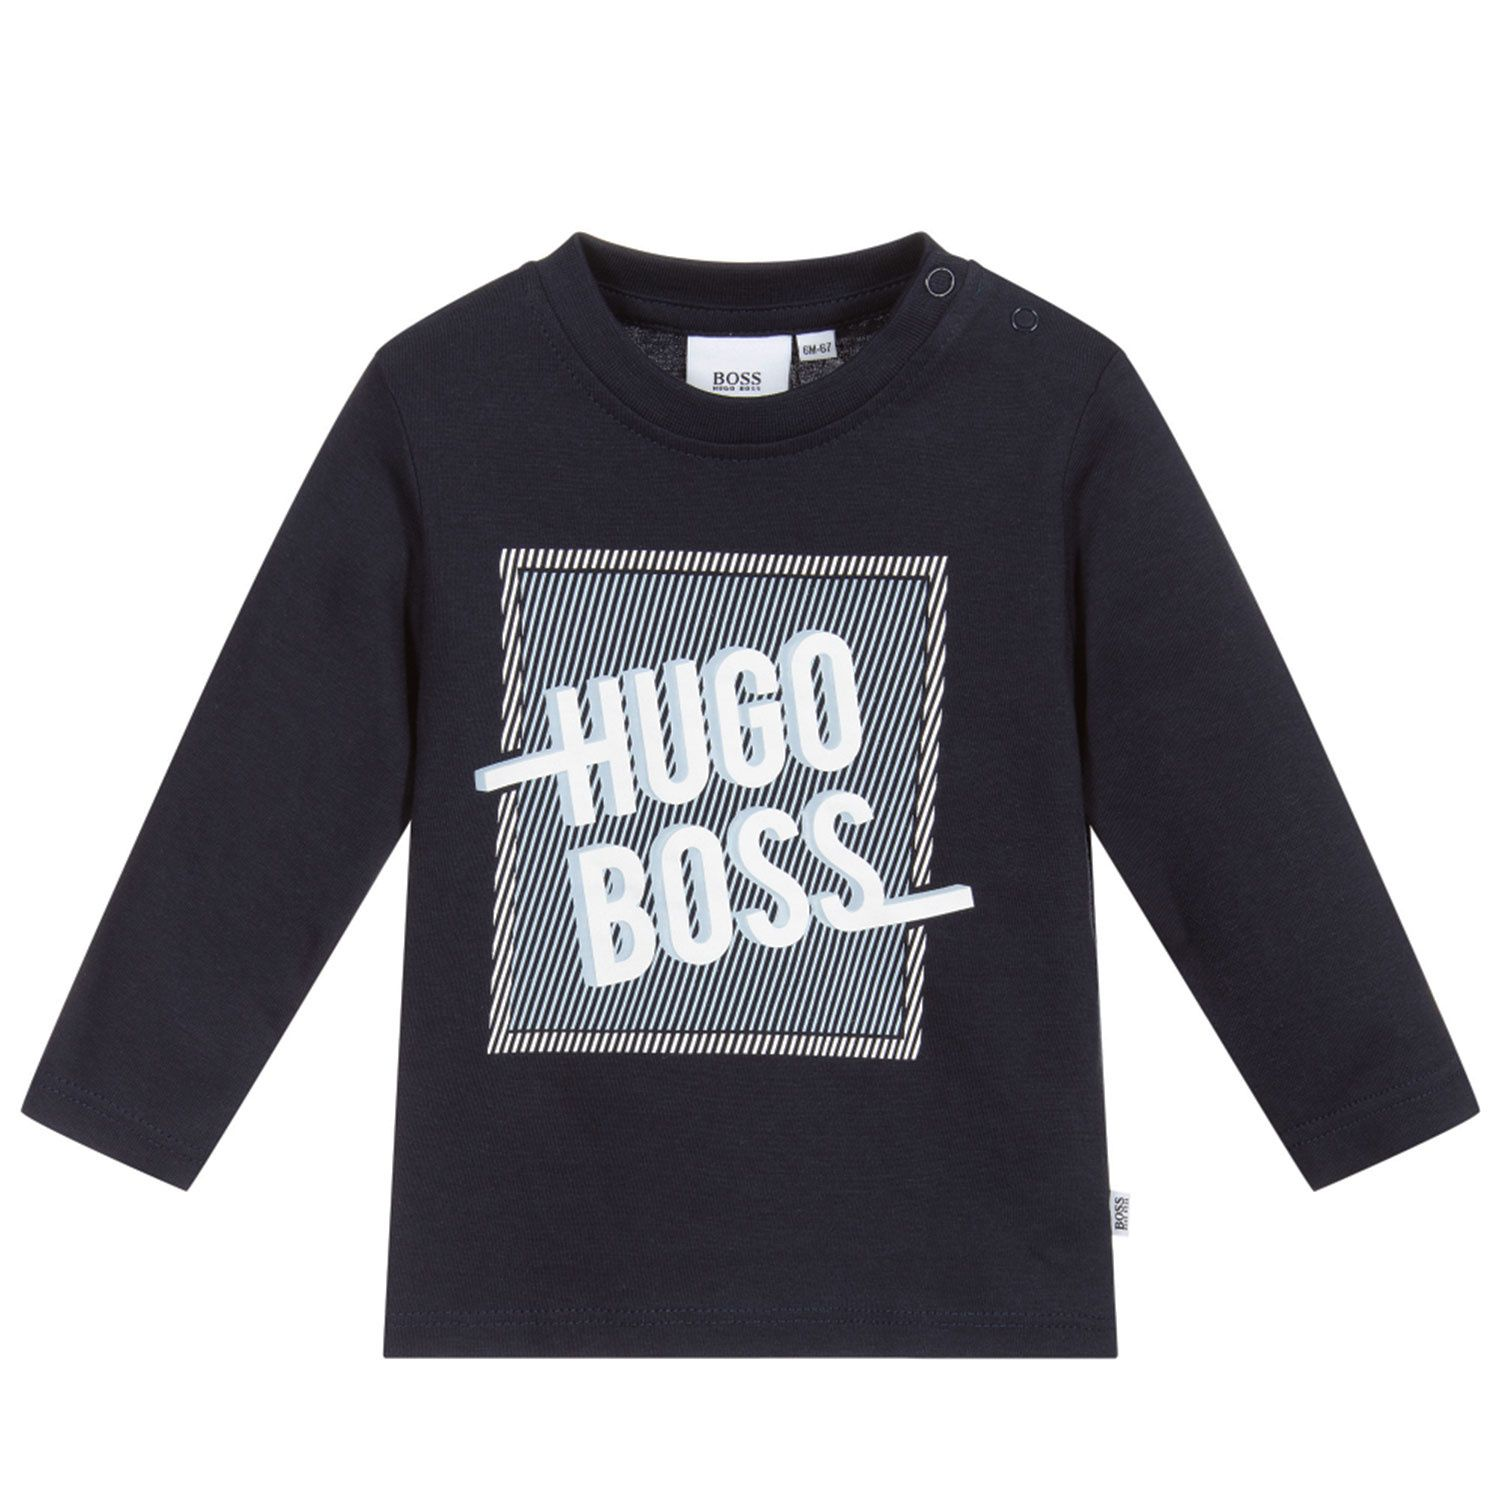 Picture of Boss J05800 baby shirt navy